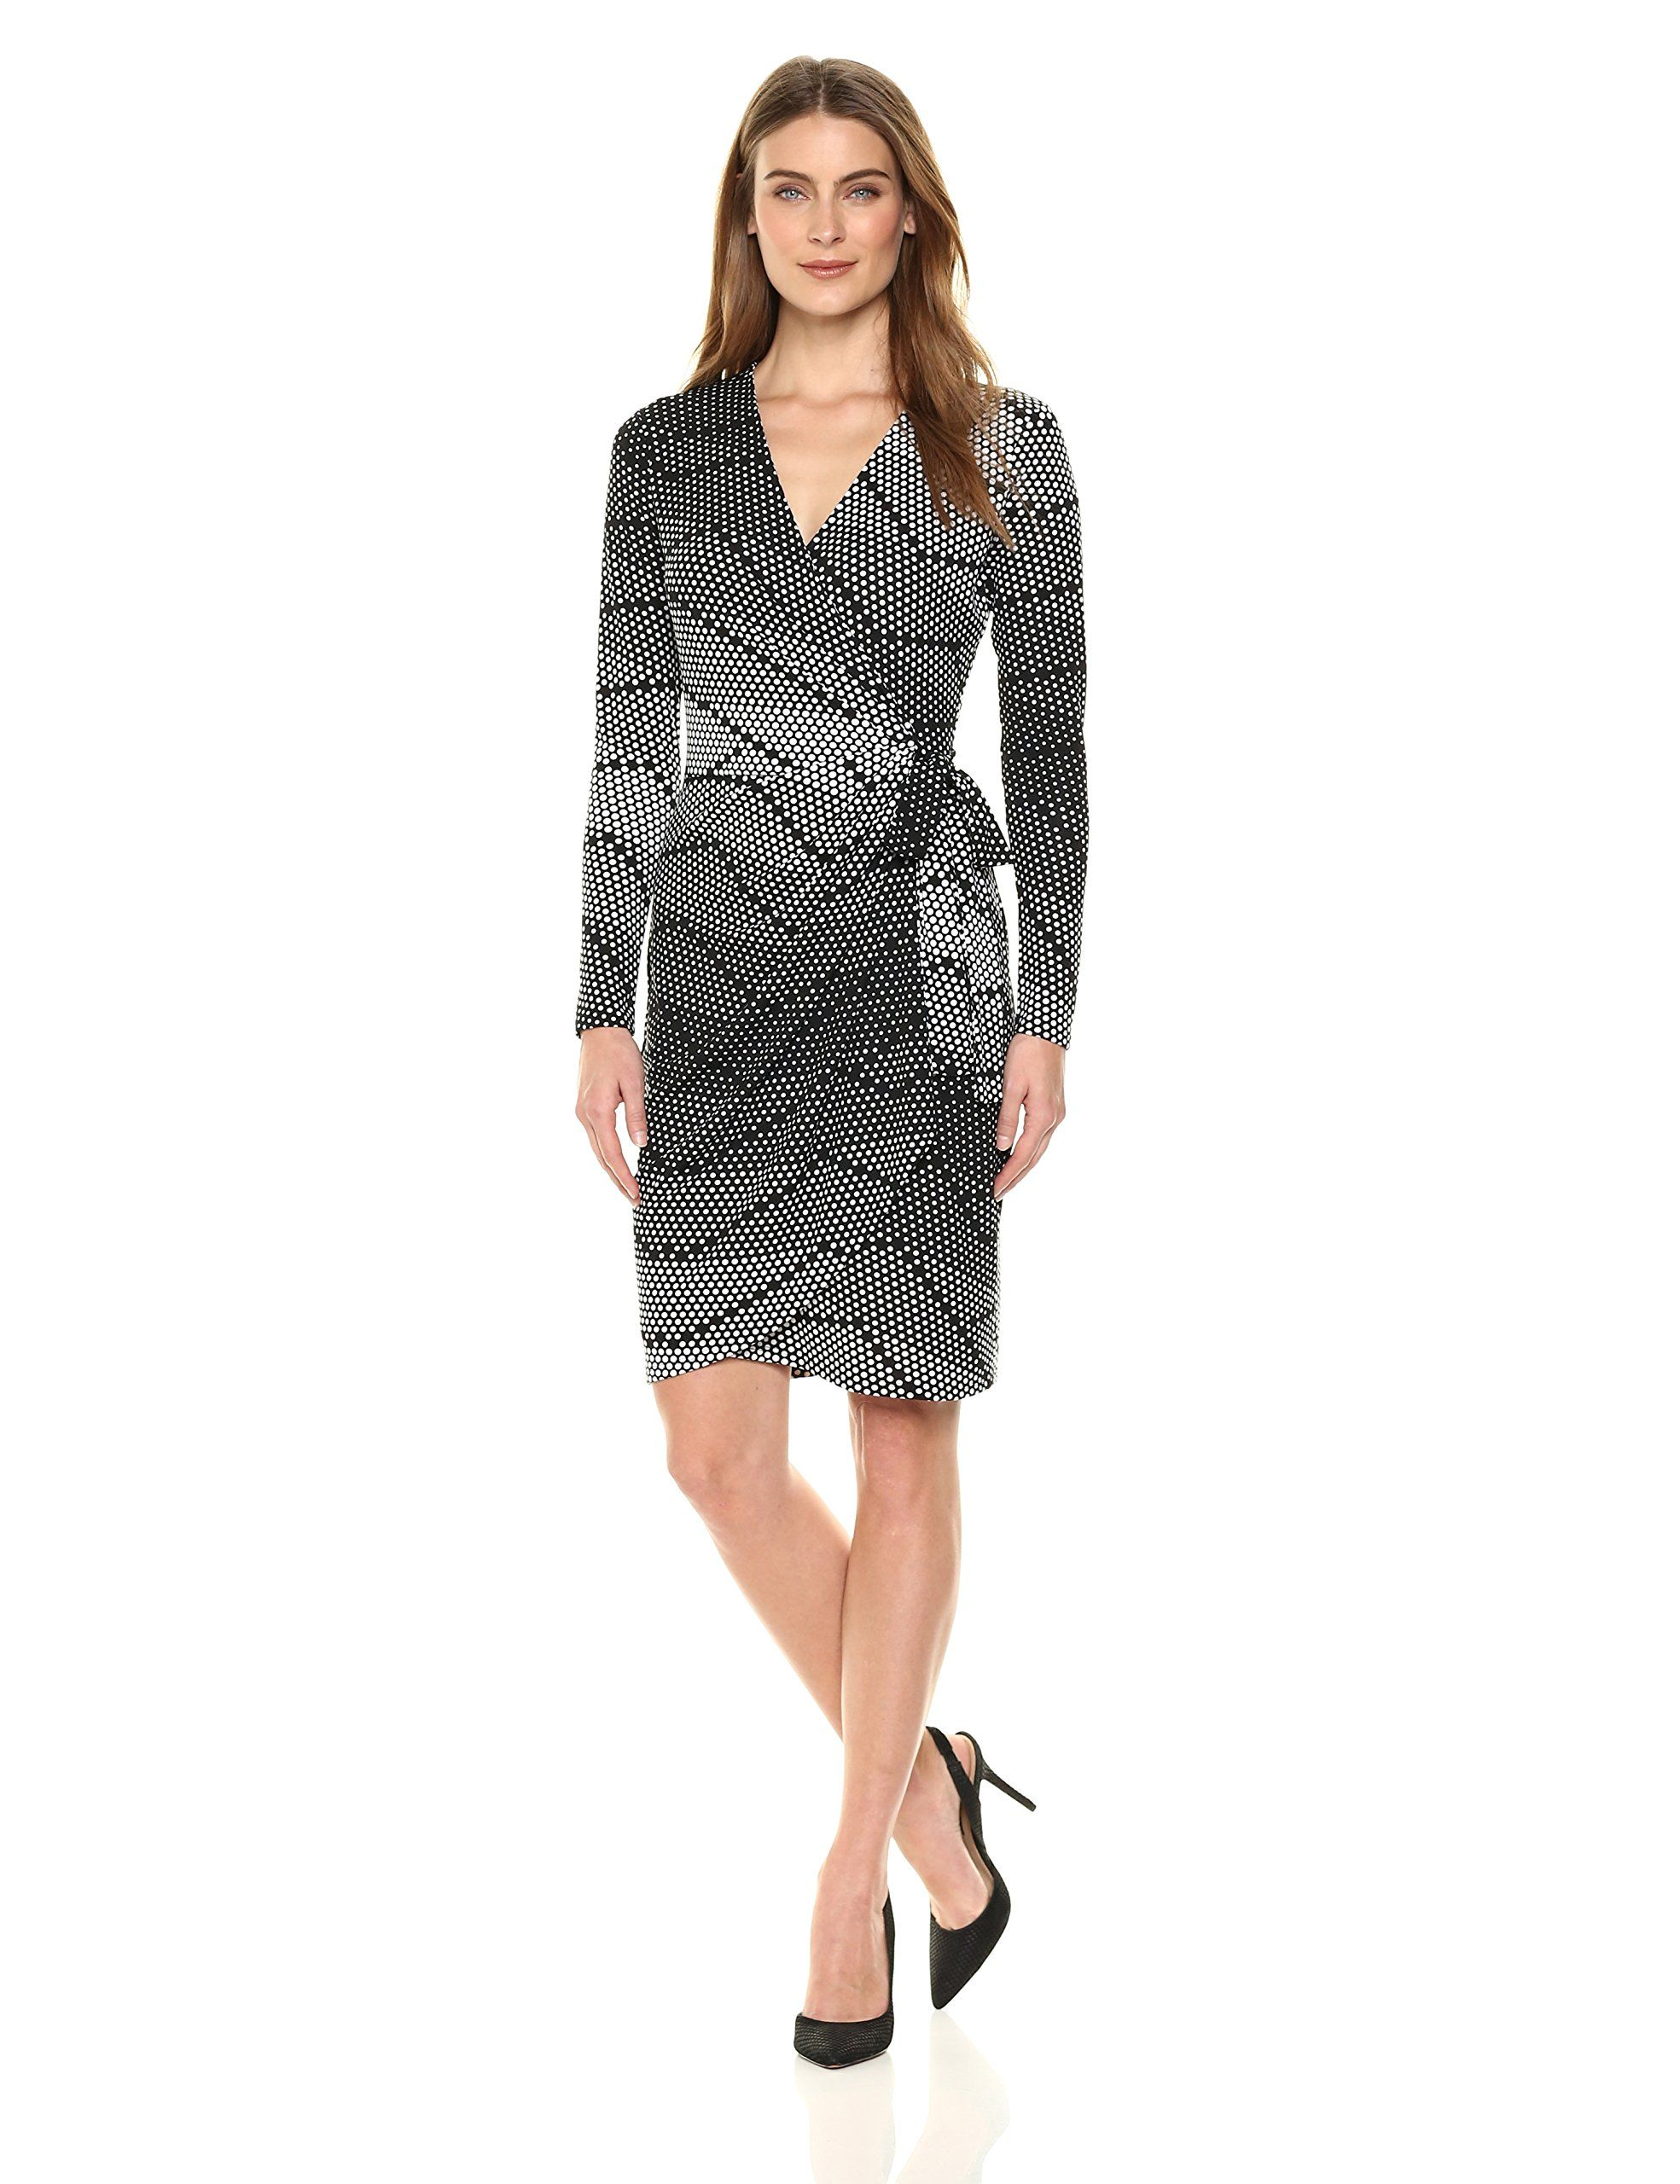 80562f5ab79d AMAZON Lark & Ro Women's Classic Long Sleeve Wrap Dress - Ellie Ross -  PRODUCT